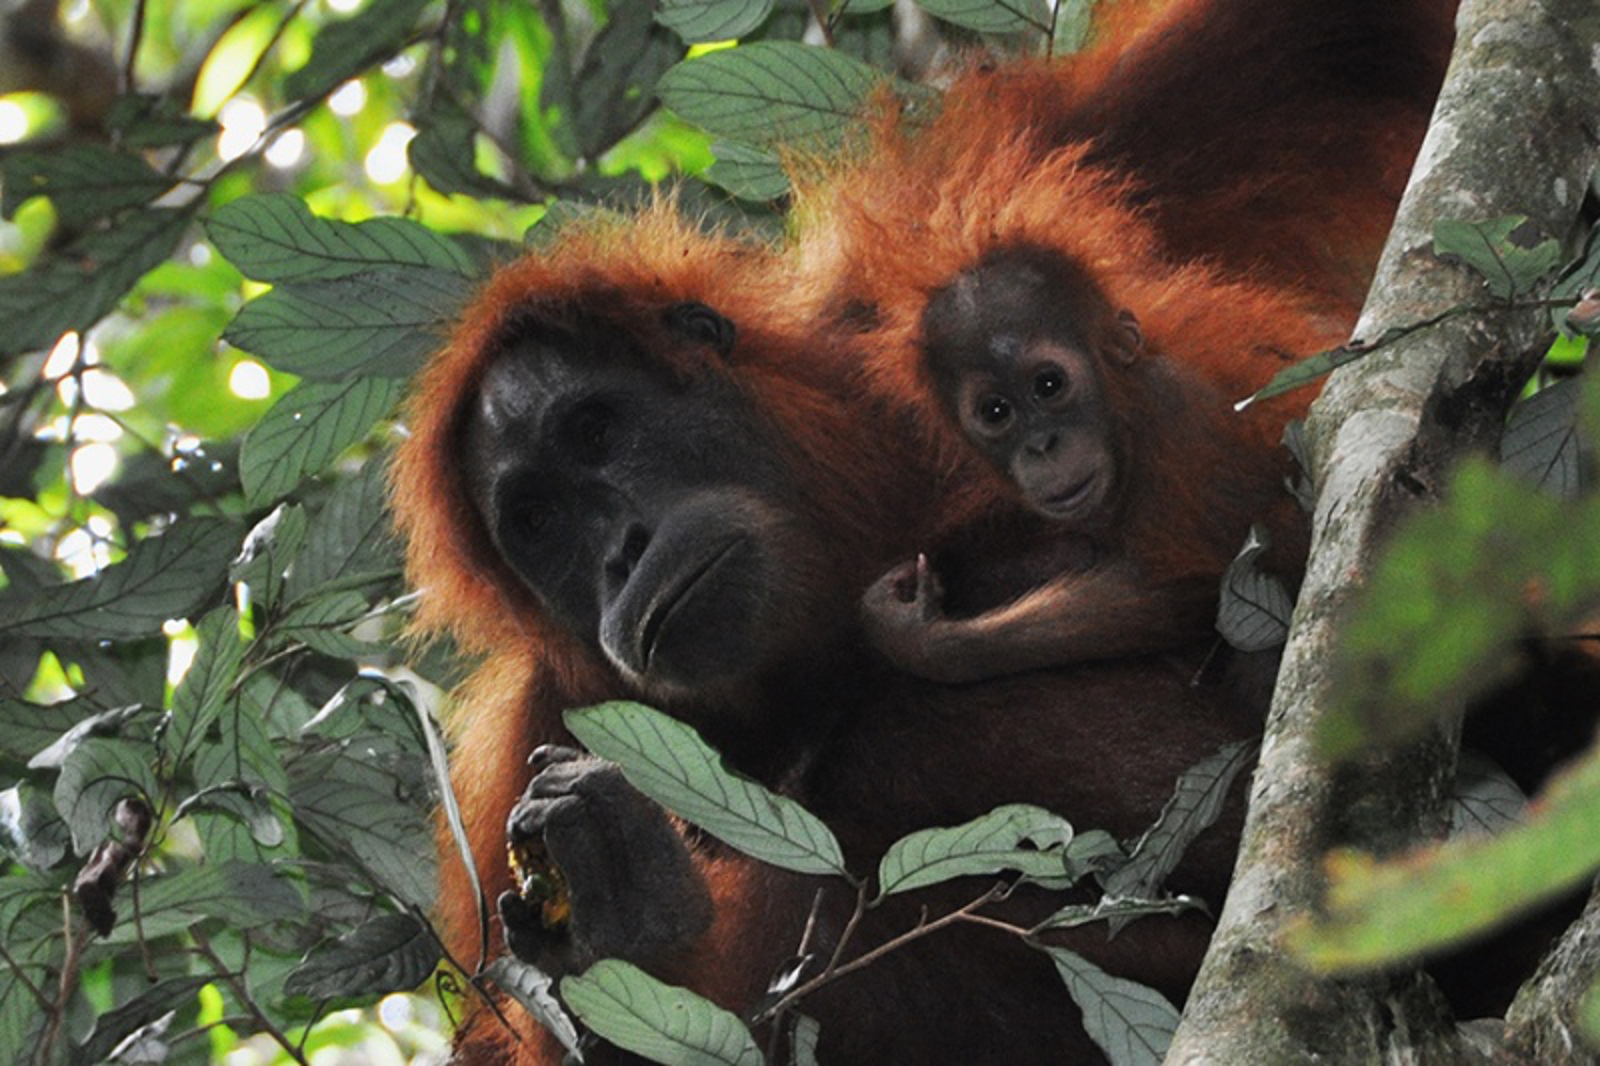 How Palm Oil Production Has Changed Life for the Orangutan